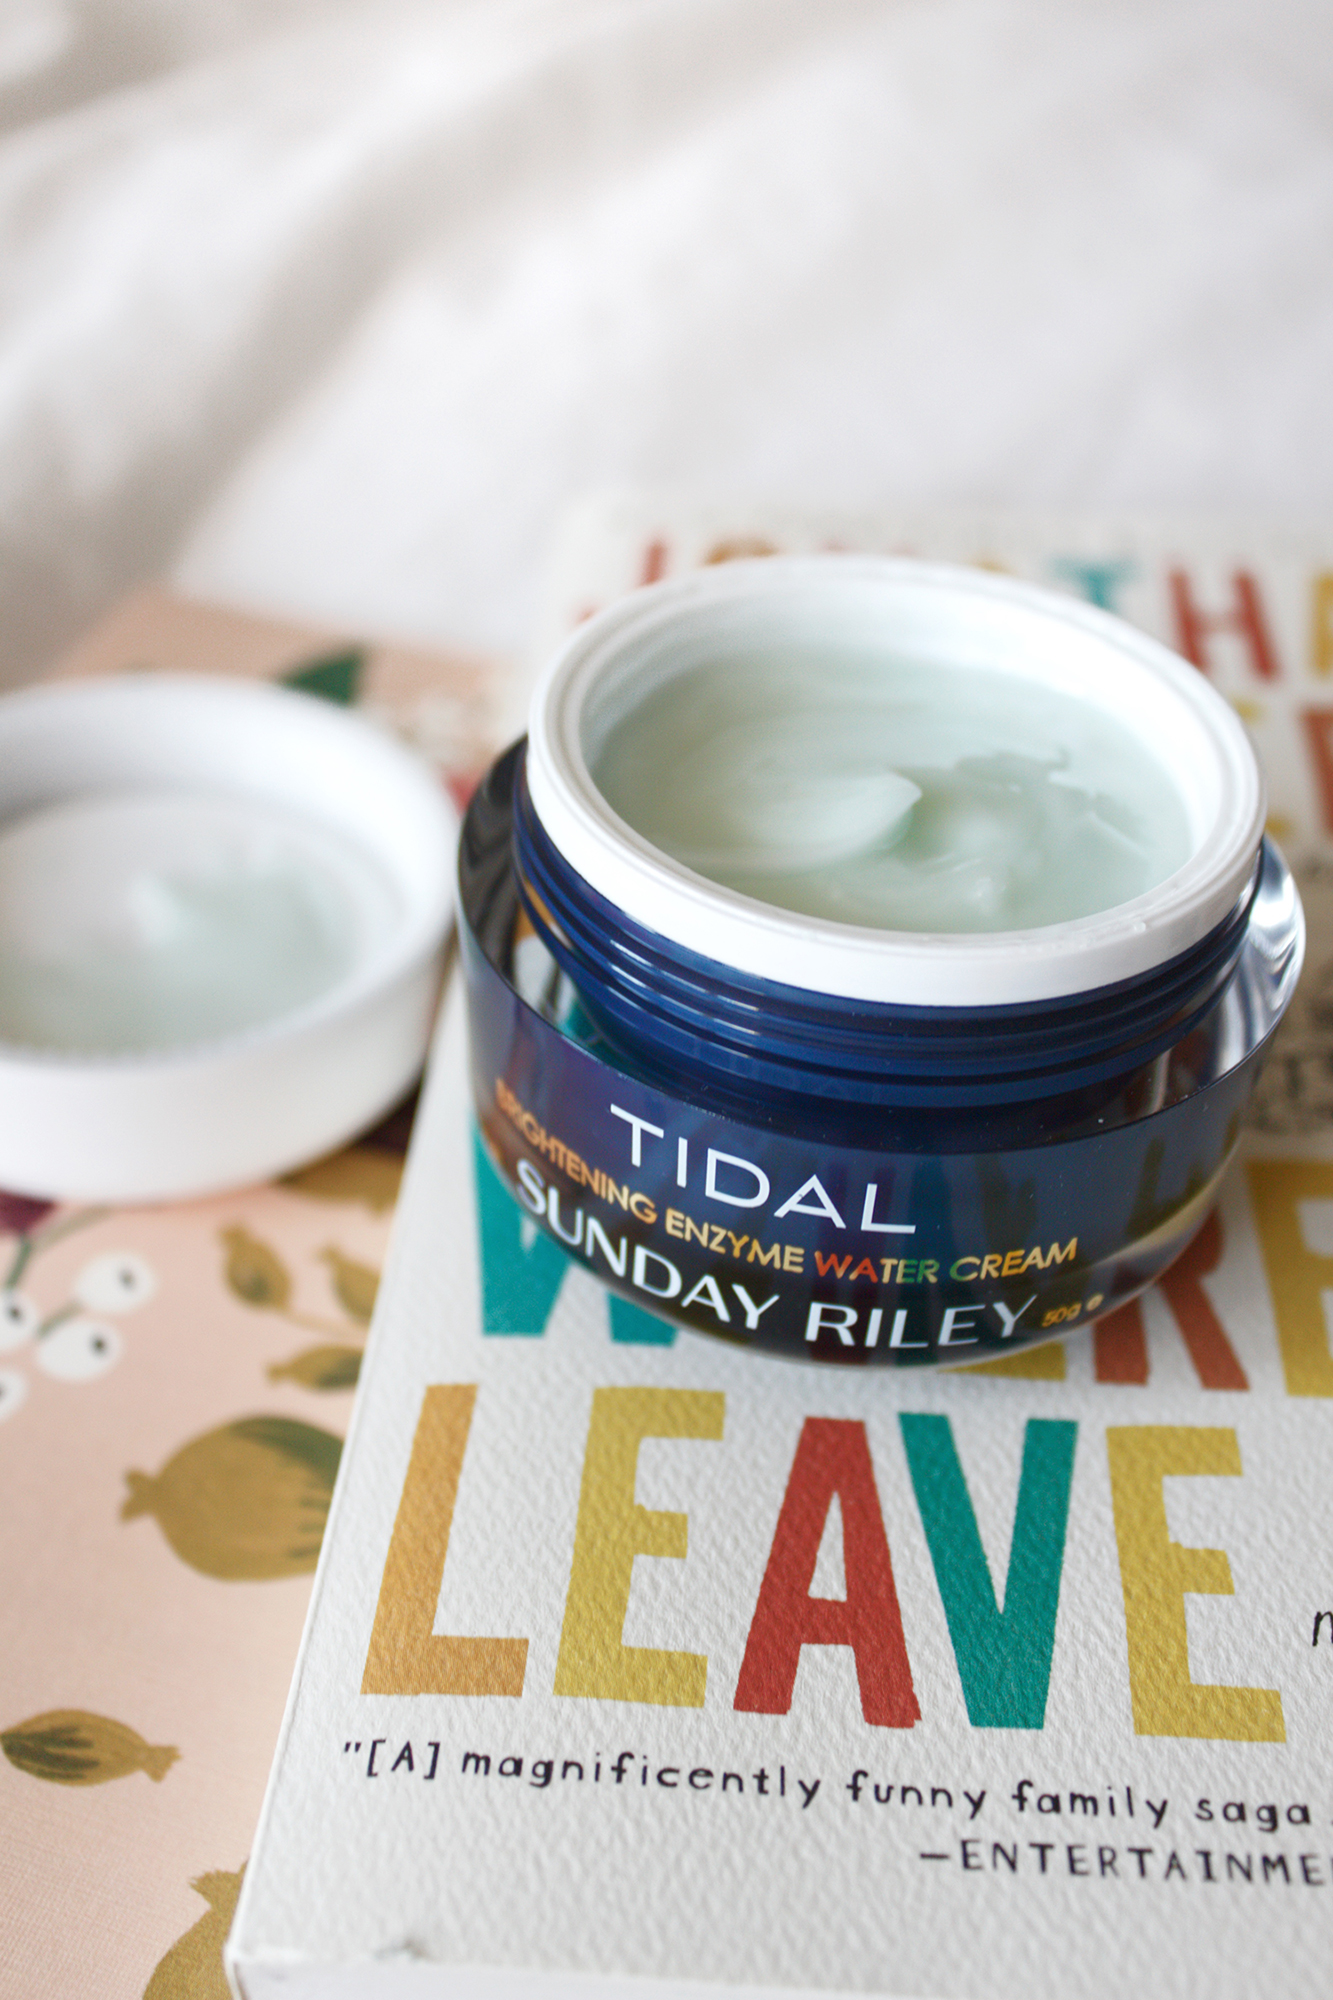 Sunday Riley Tidal Brightening Enzyme Water Cream